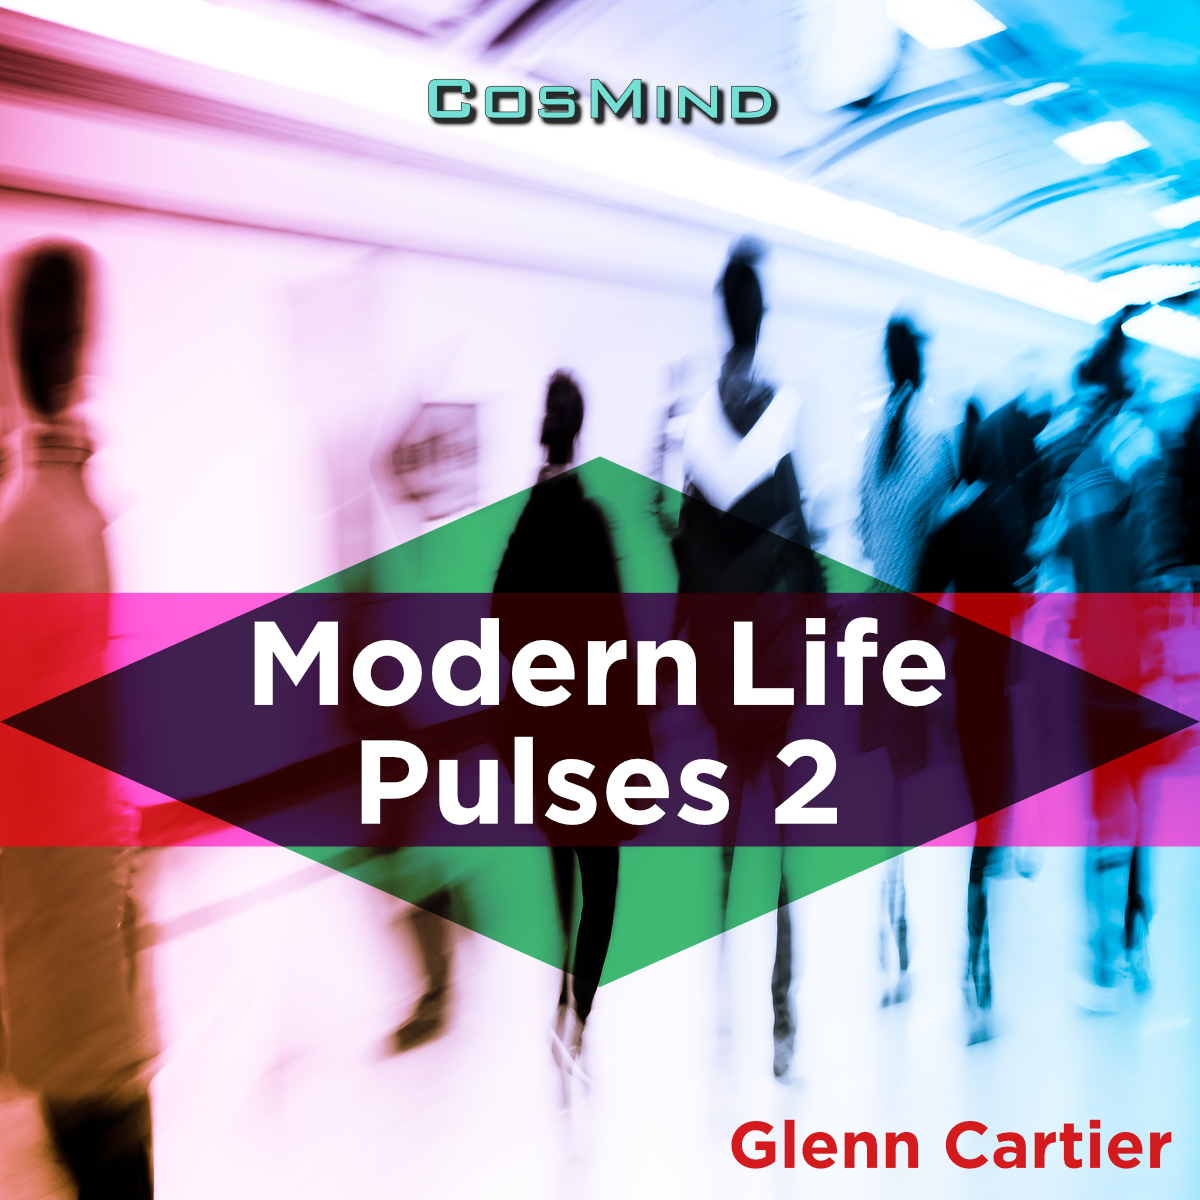 Modern Life Pulses 2